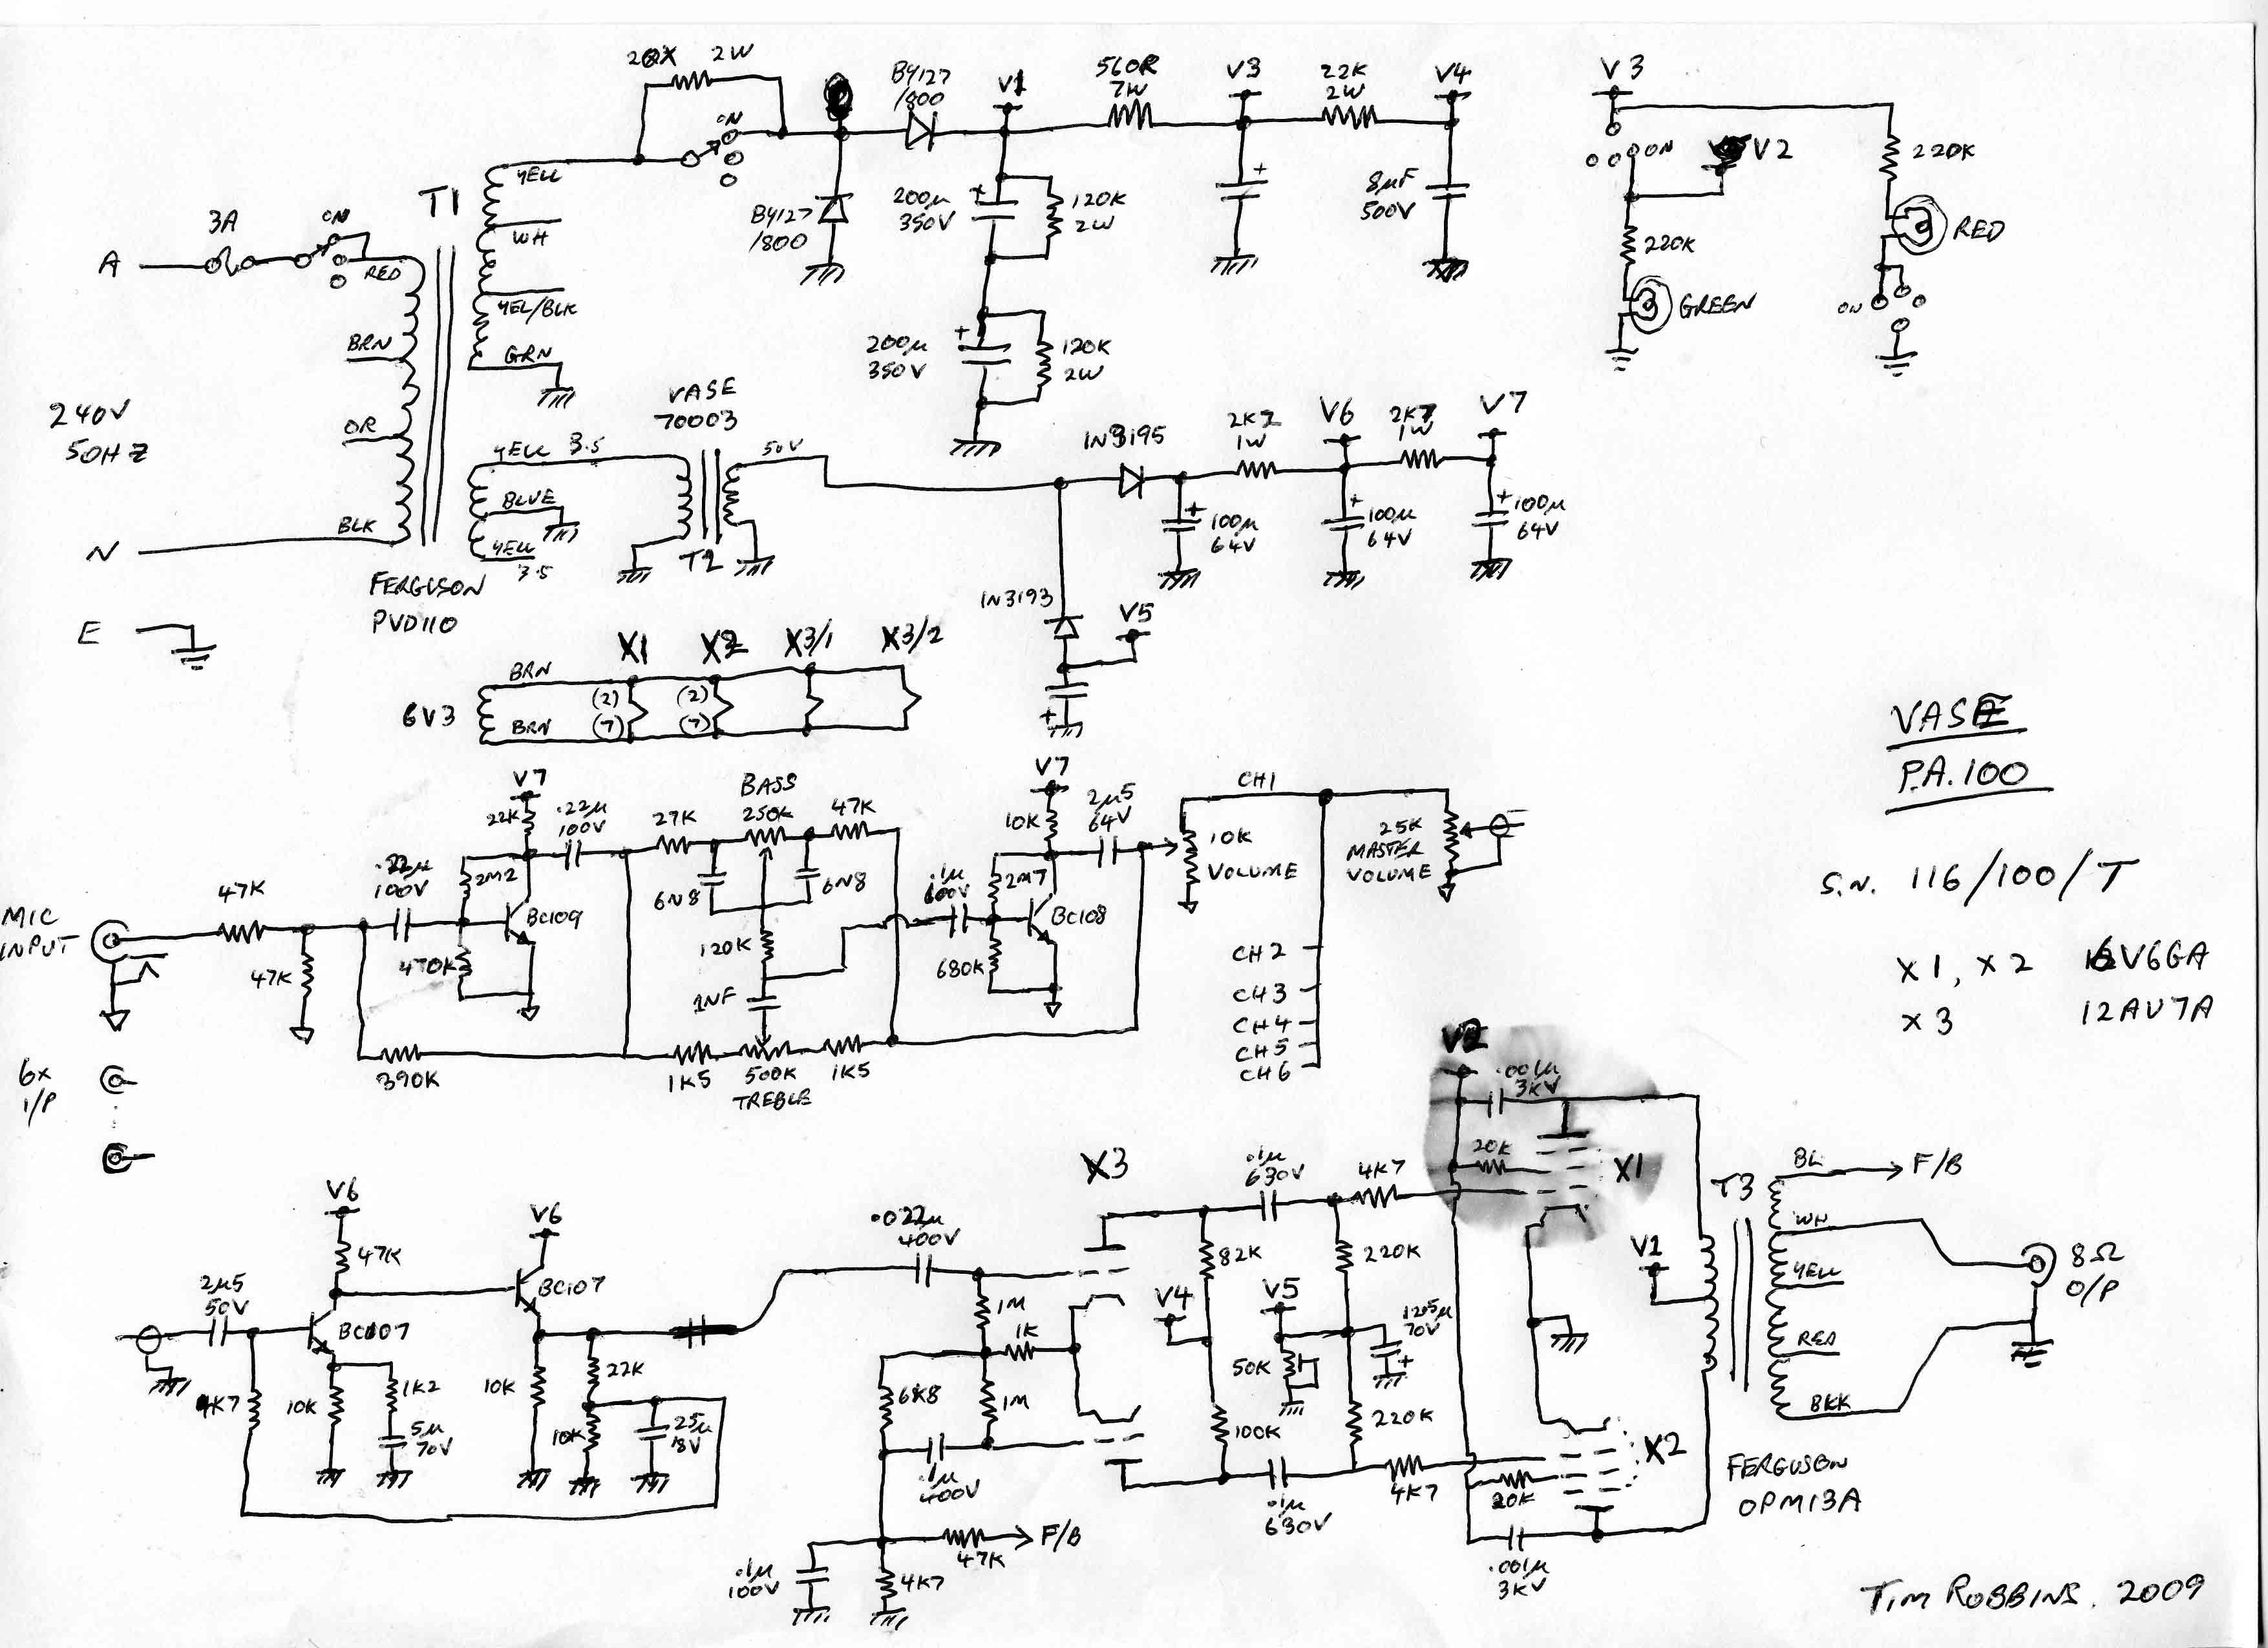 Pa 200 Wiring Diagram Trusted Diagrams Honda 200e Search For U2022 P28